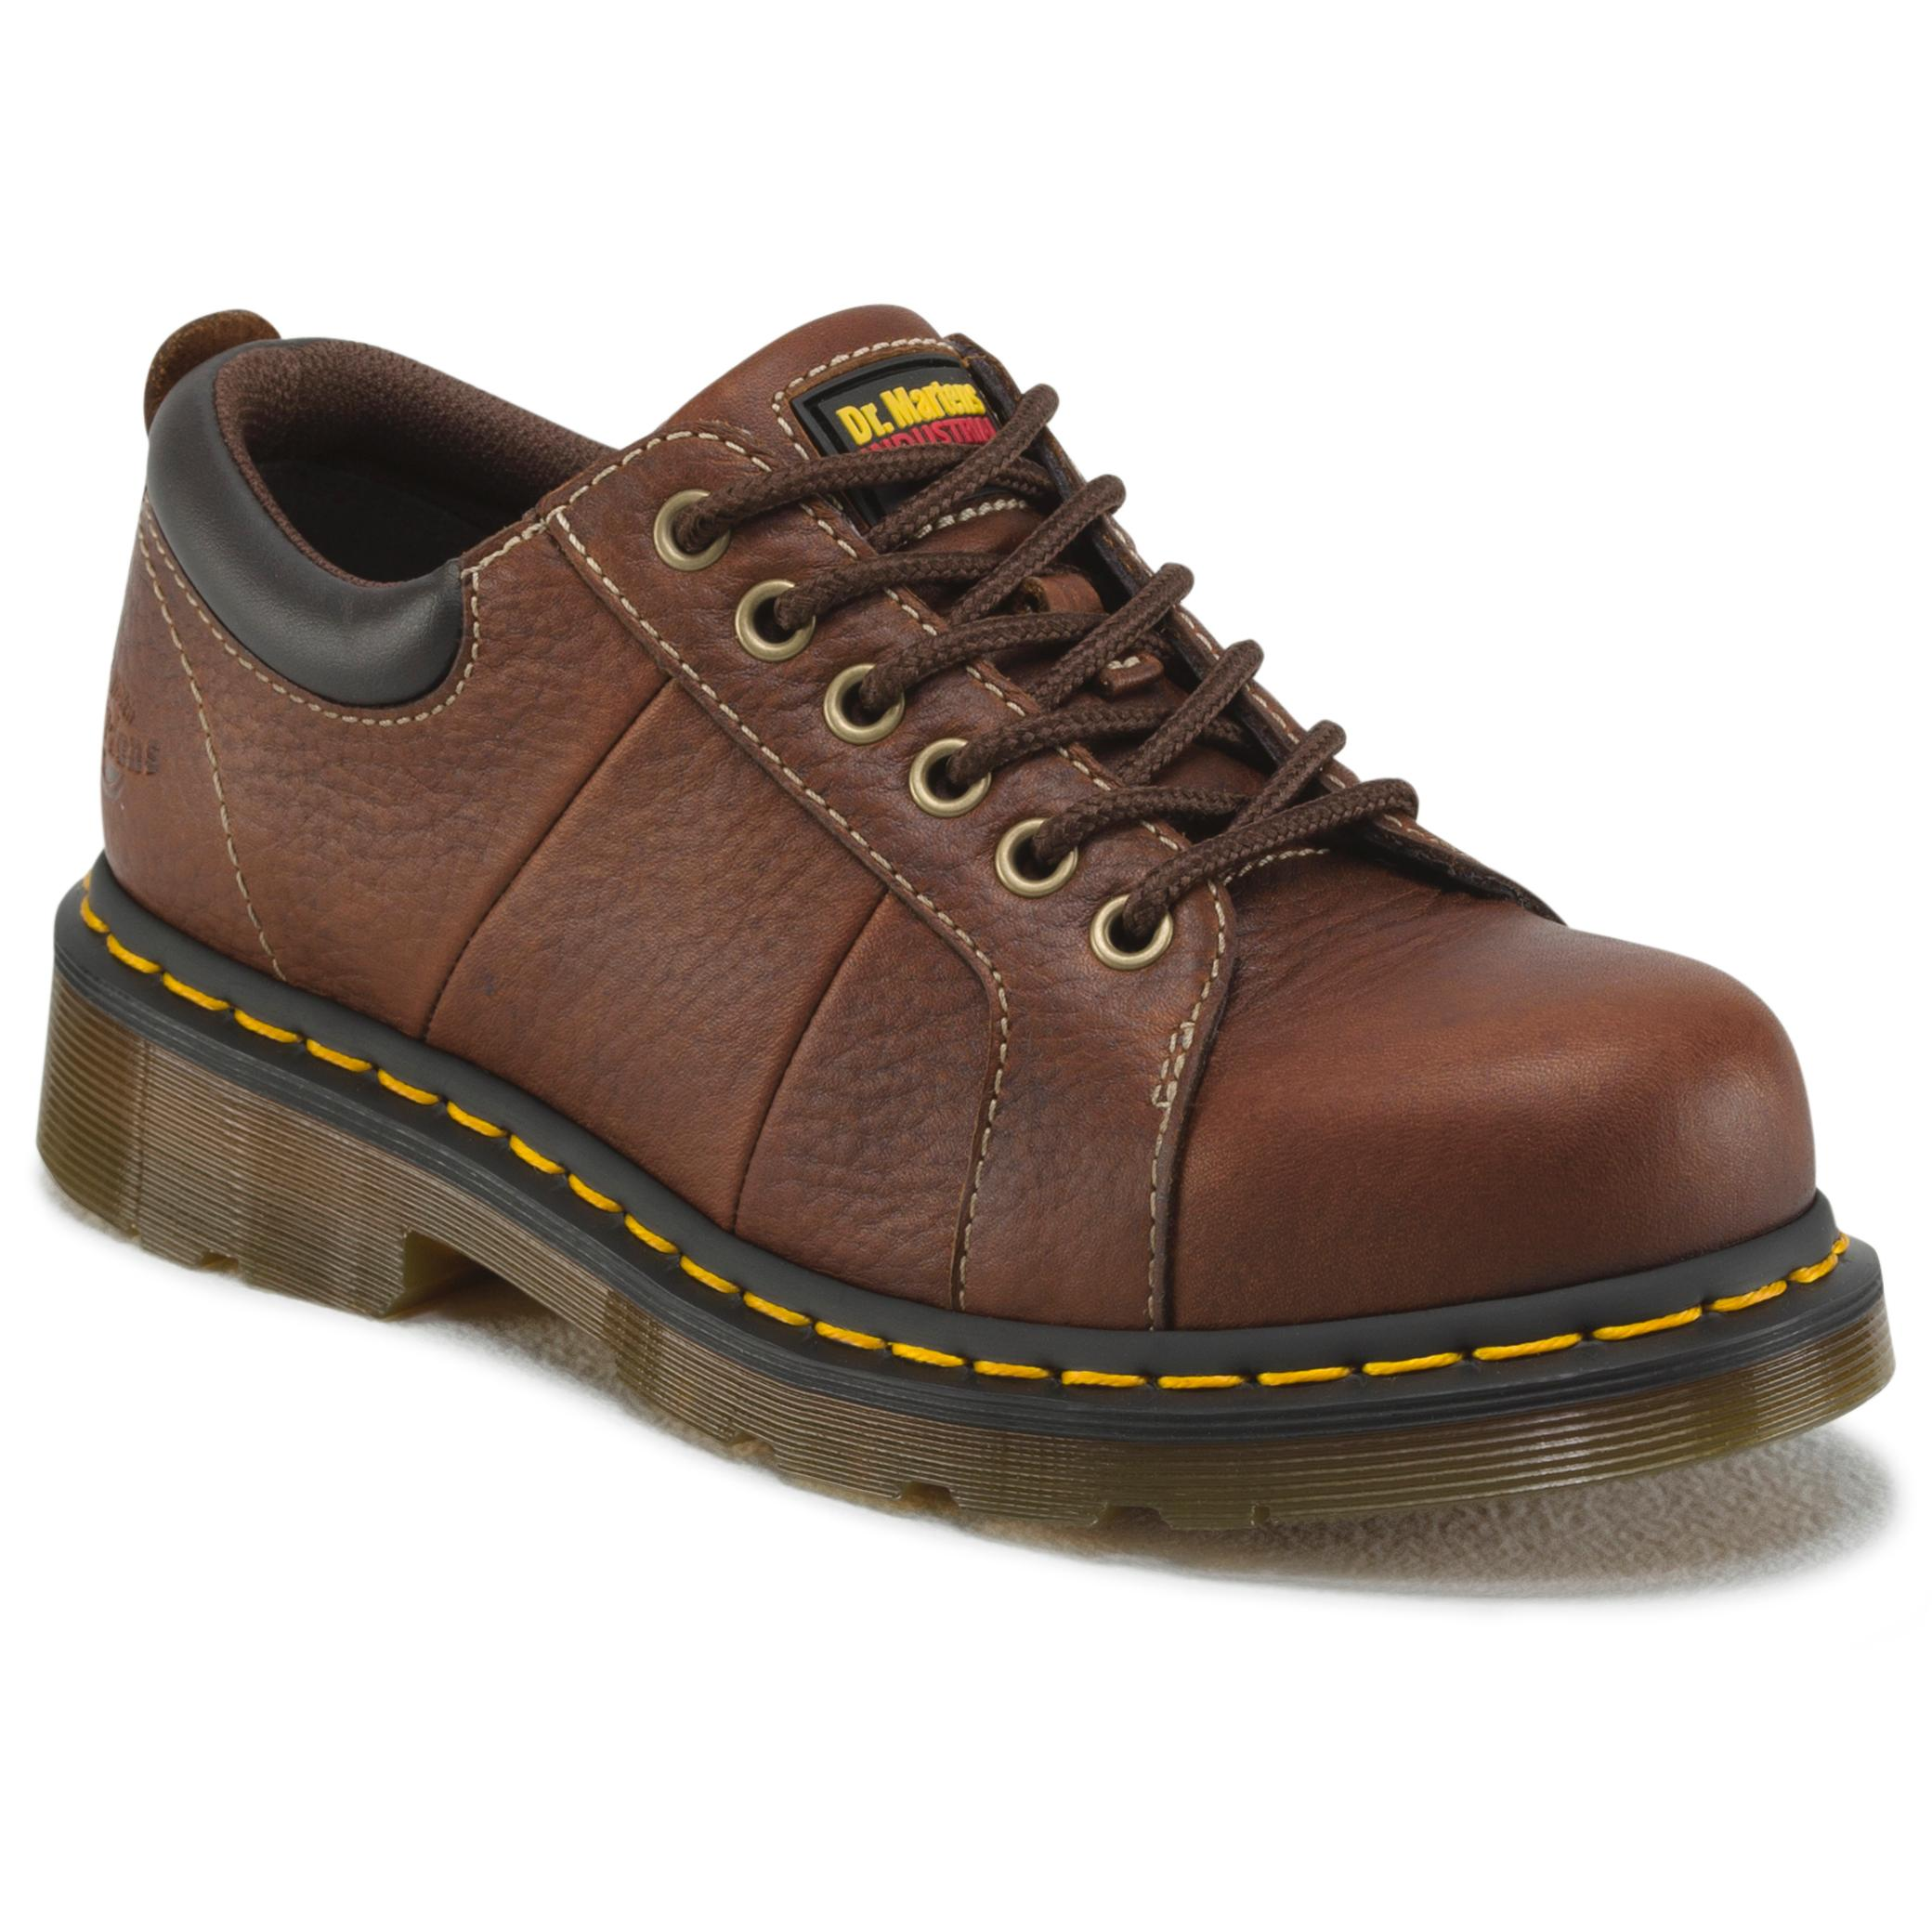 Dr Martens Womens Oxford Shoes